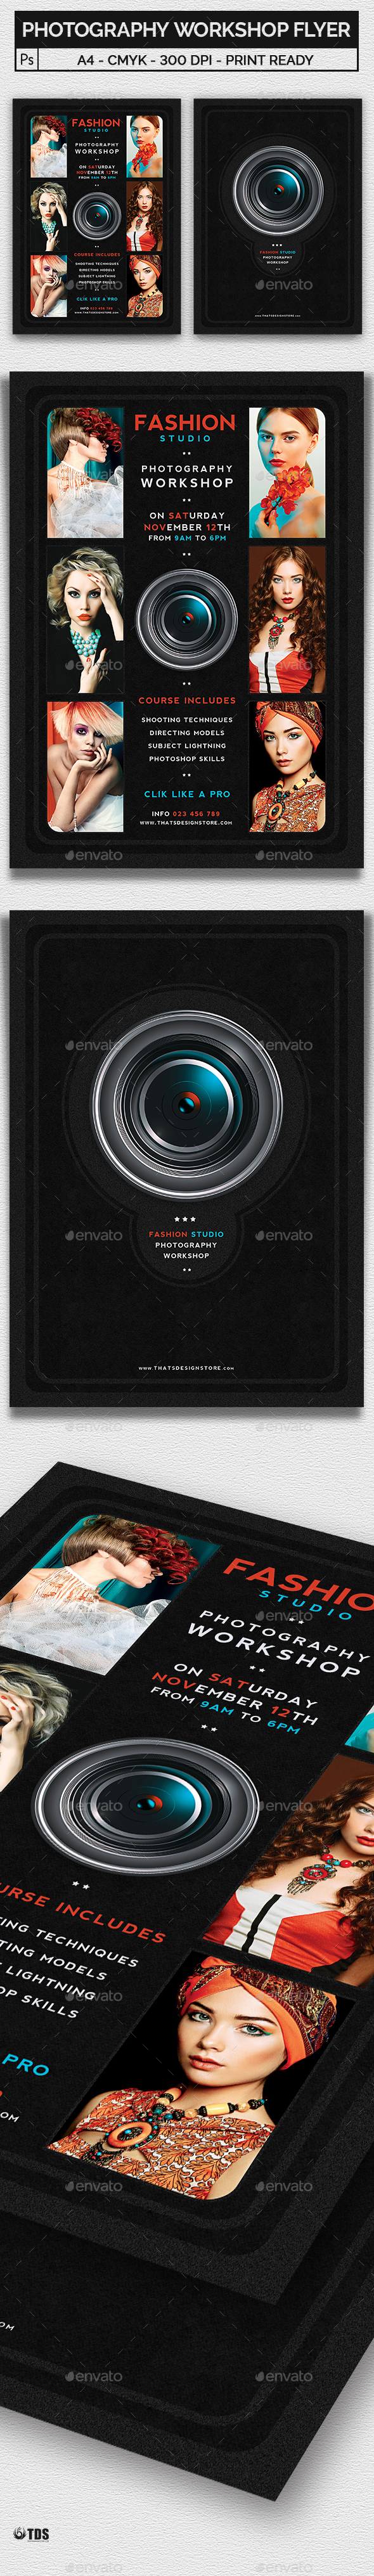 Photography Workshop Flyer Template - Corporate Flyers